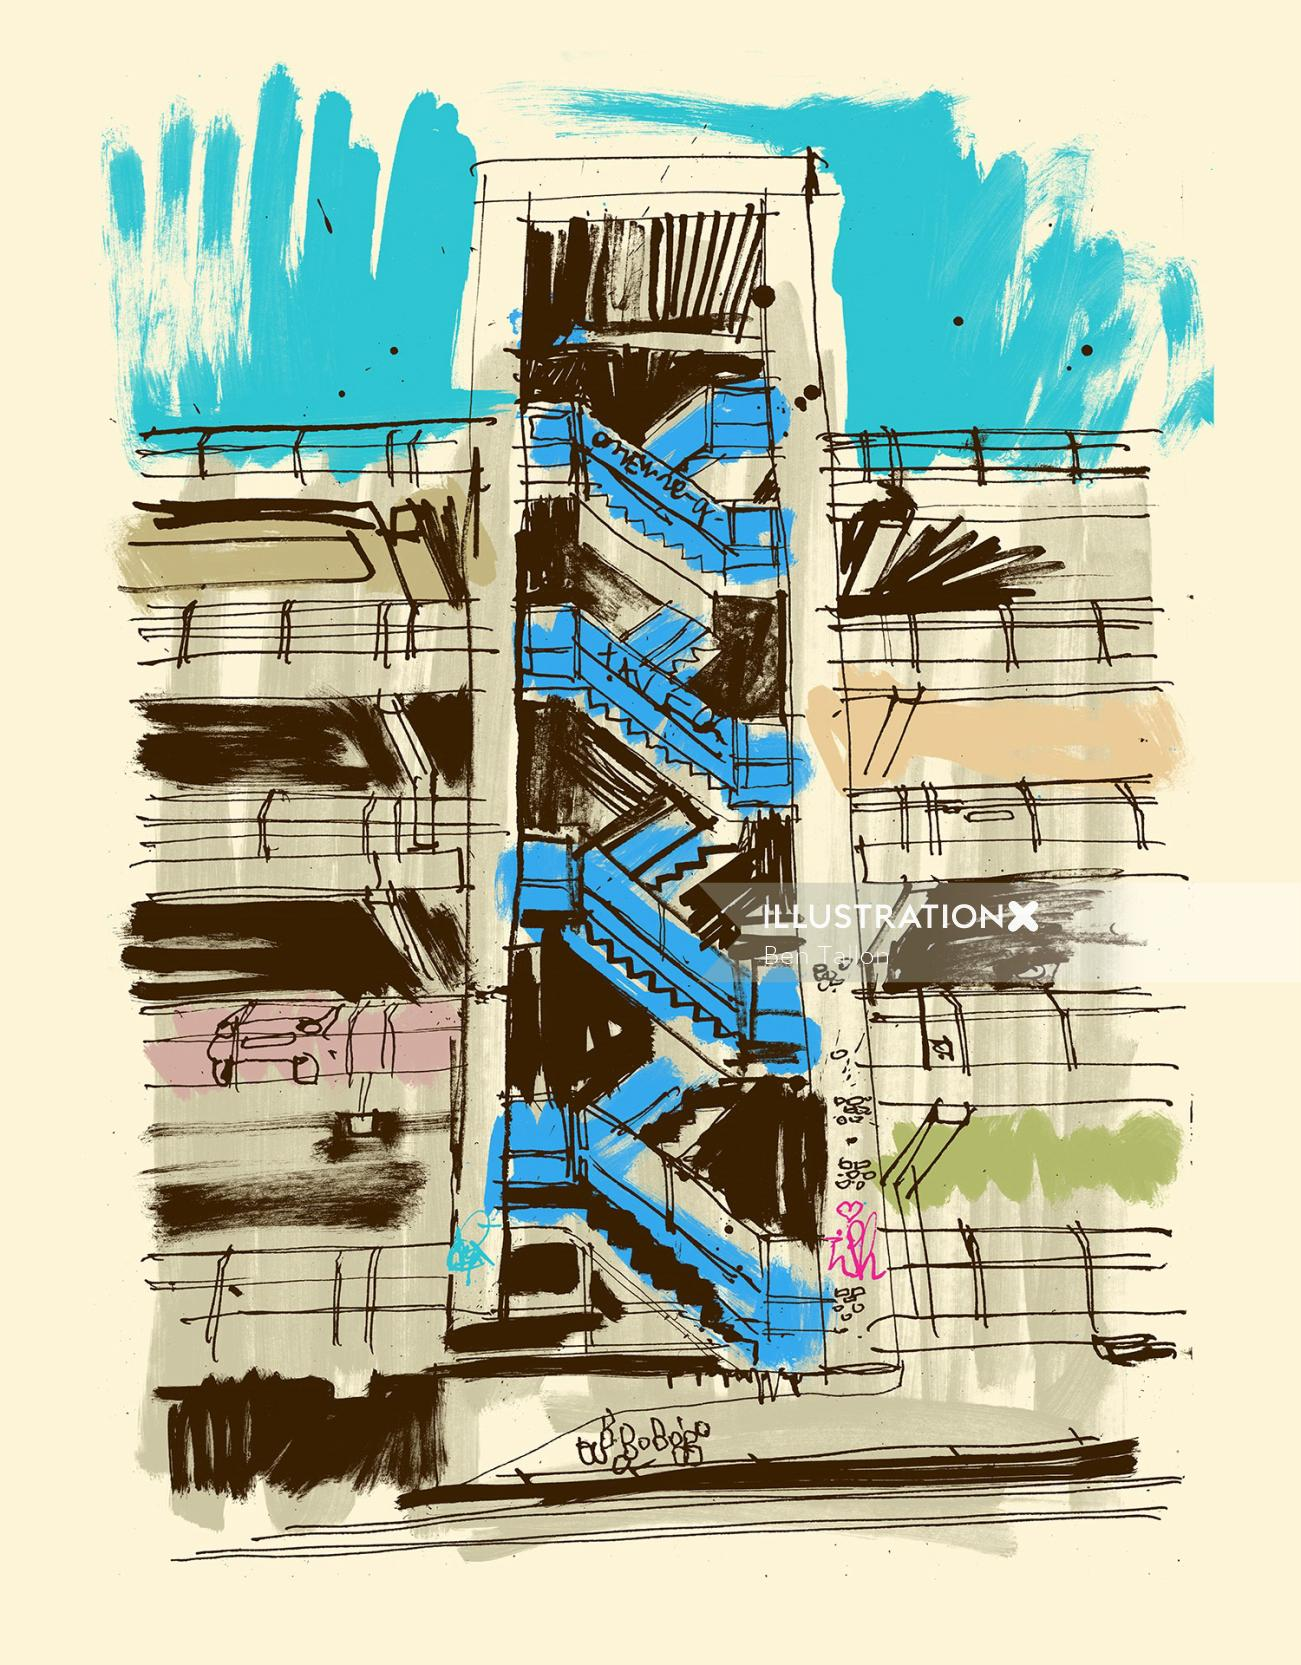 line drawing of Manchester street by Ben Tallon